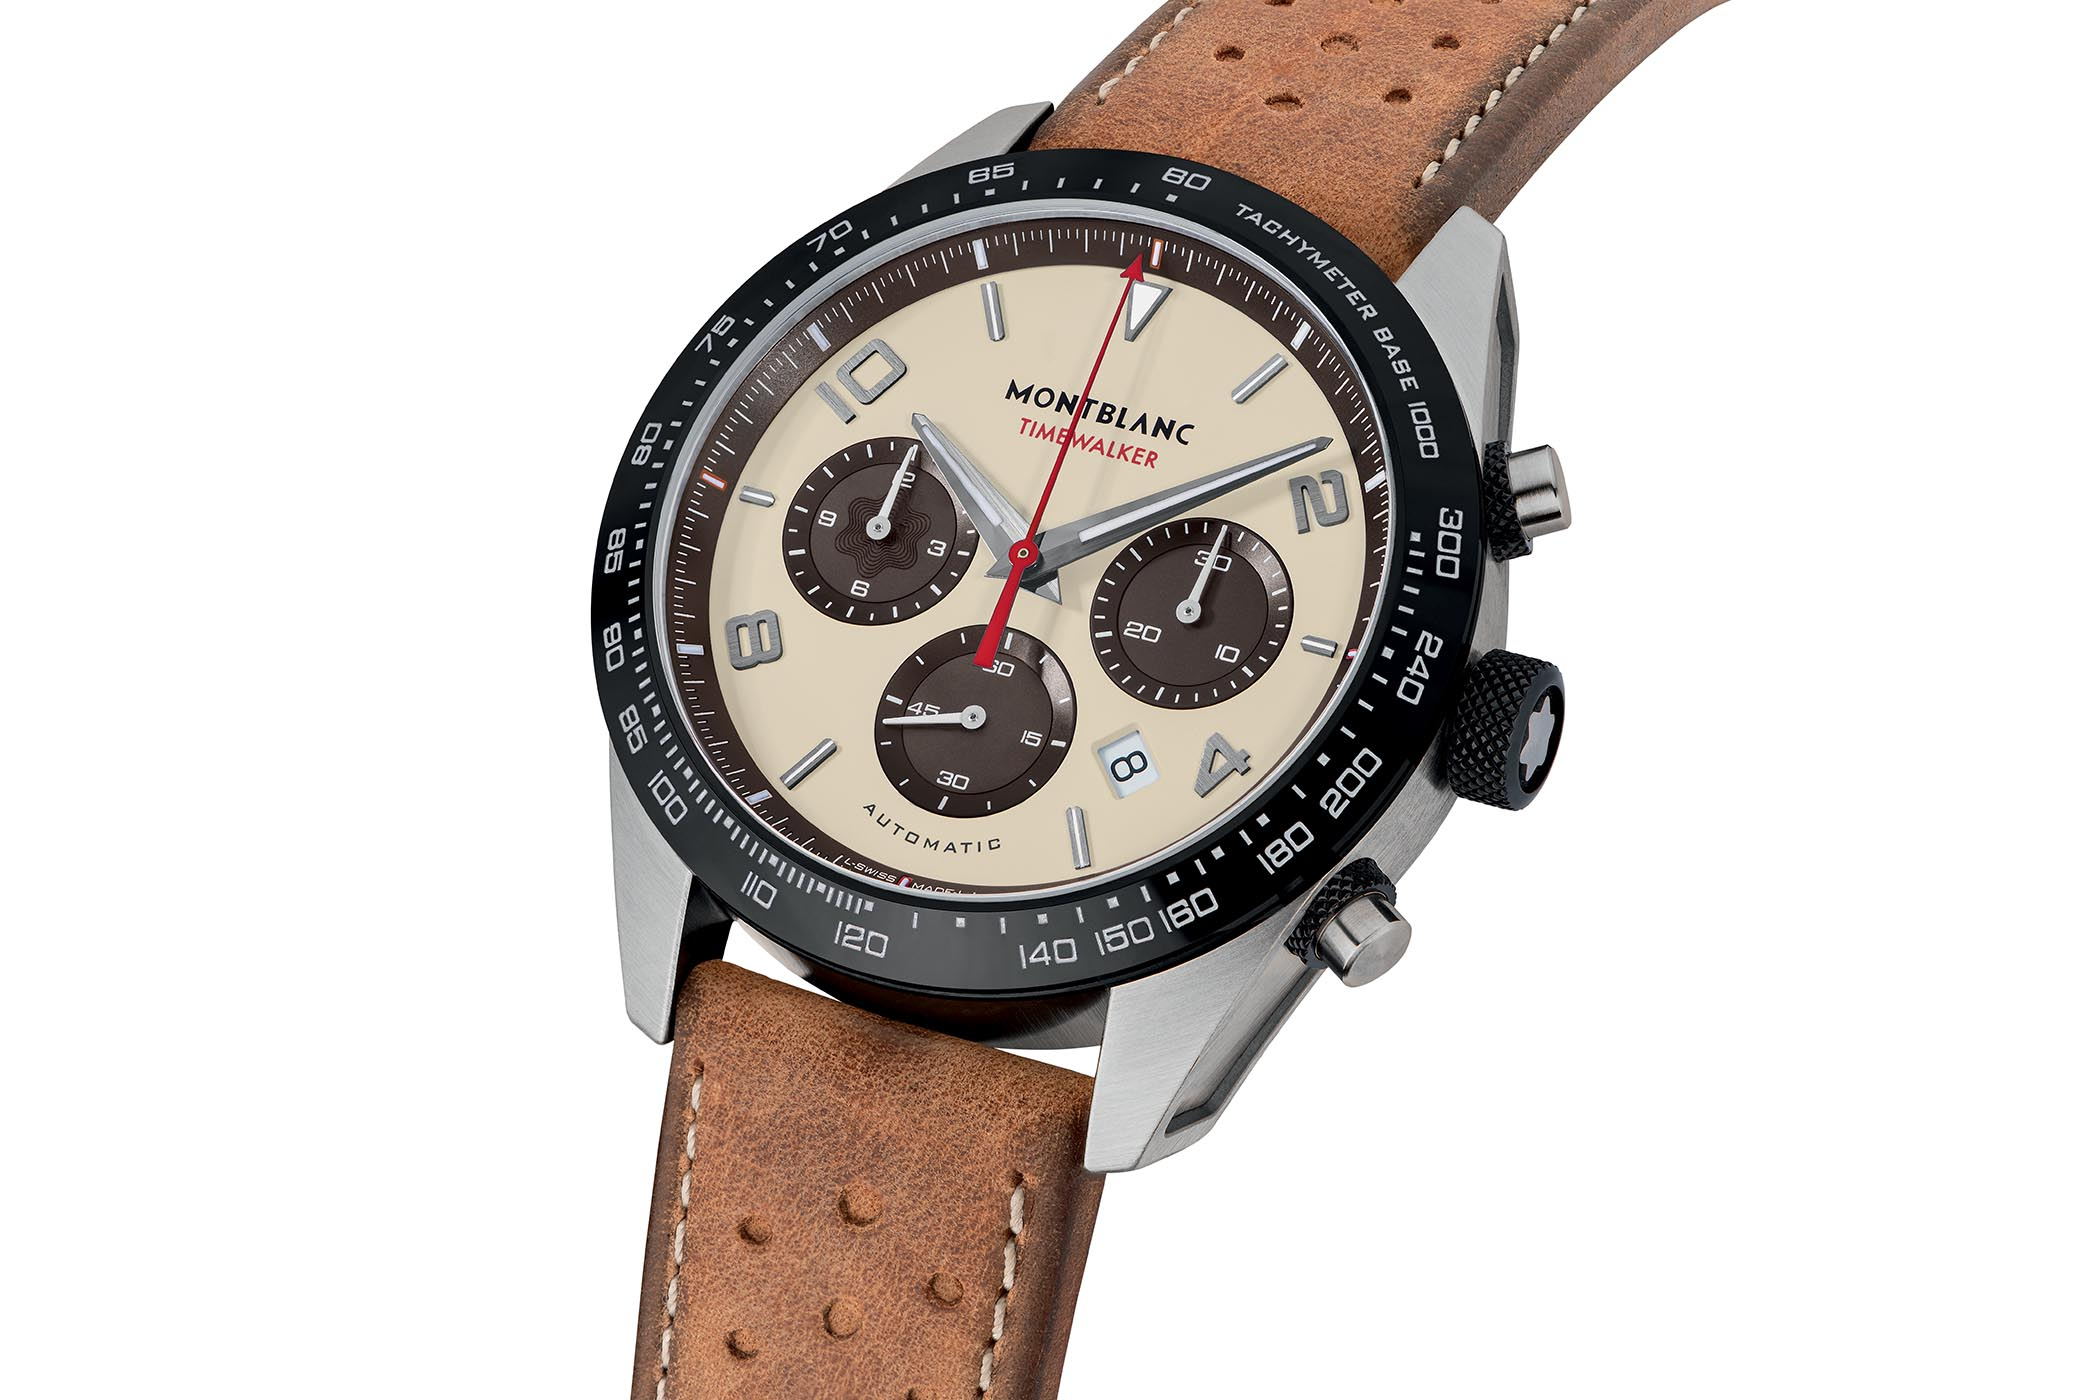 Montblanc TimeWalker Manufacture Chronograph Limited Edition Cappucino Goodwood